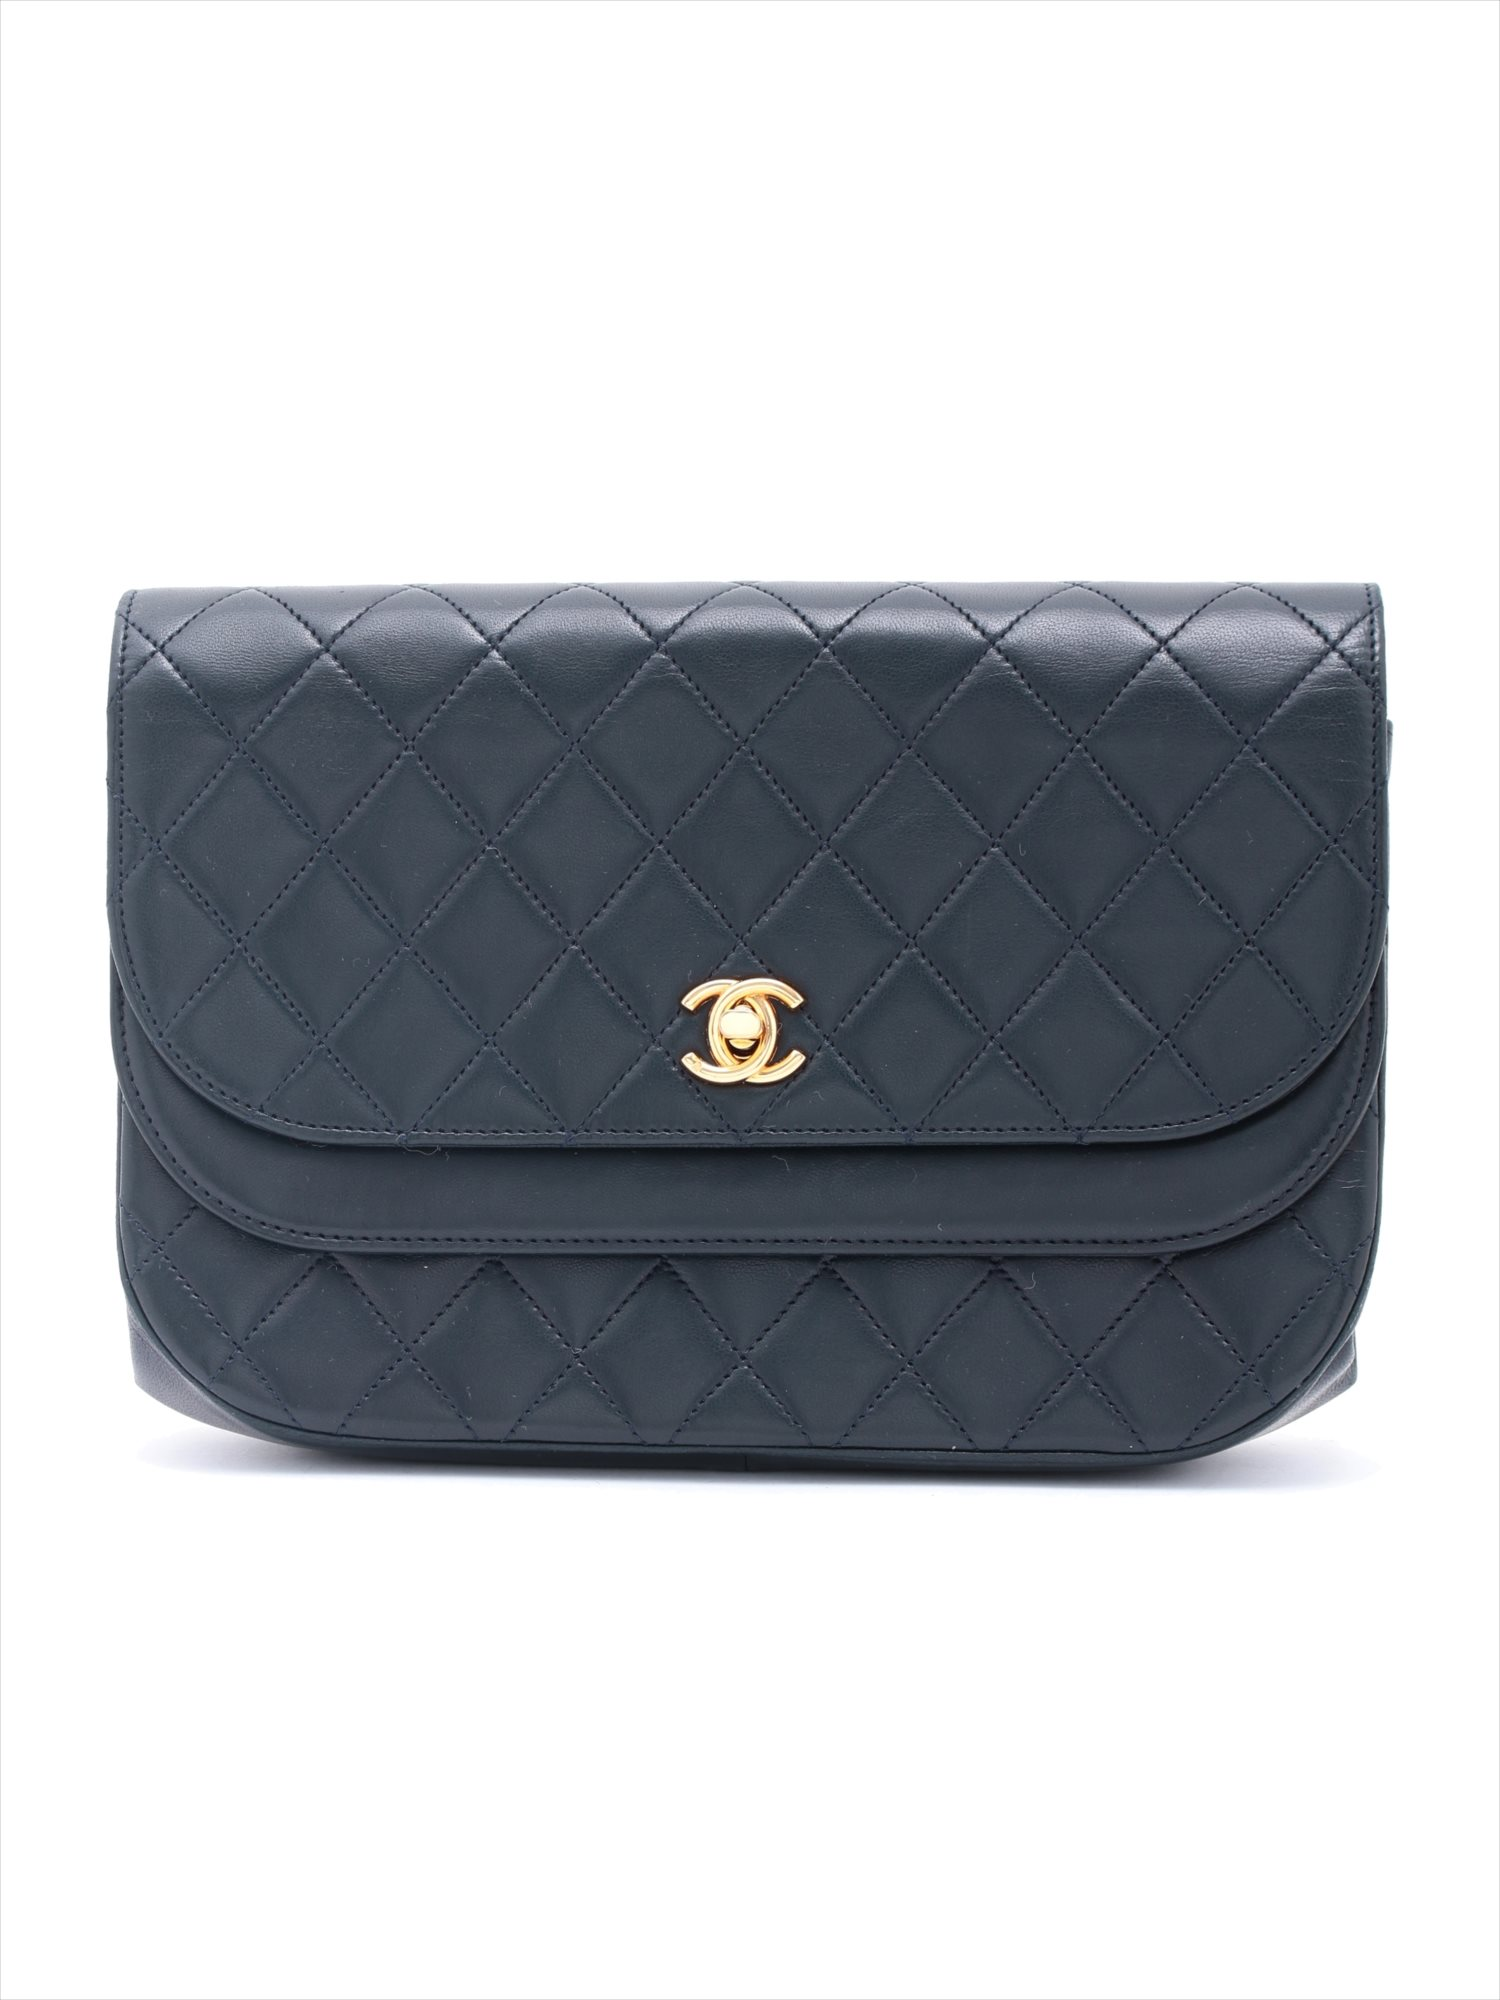 [Used goods] Chanel Deca Matorasse lambskin shoulder bag Navy Gold Hardware 0 Series